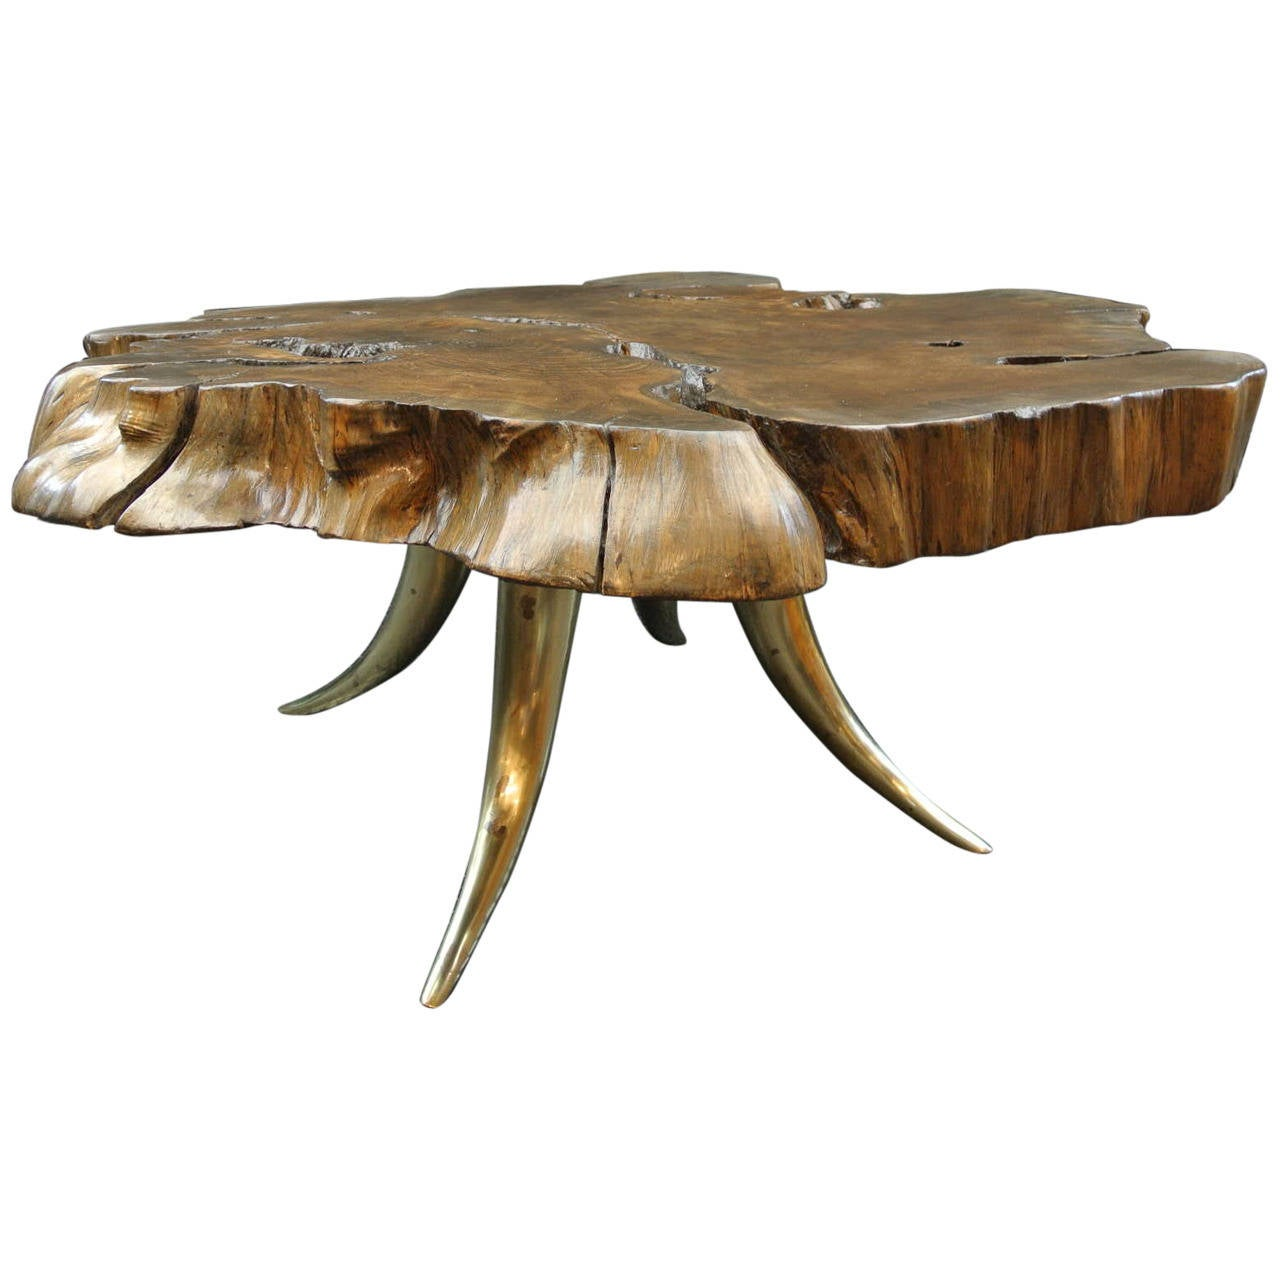 Coffee Table With Bronze Legs: Organic Table With Bronze Legs At 1stdibs